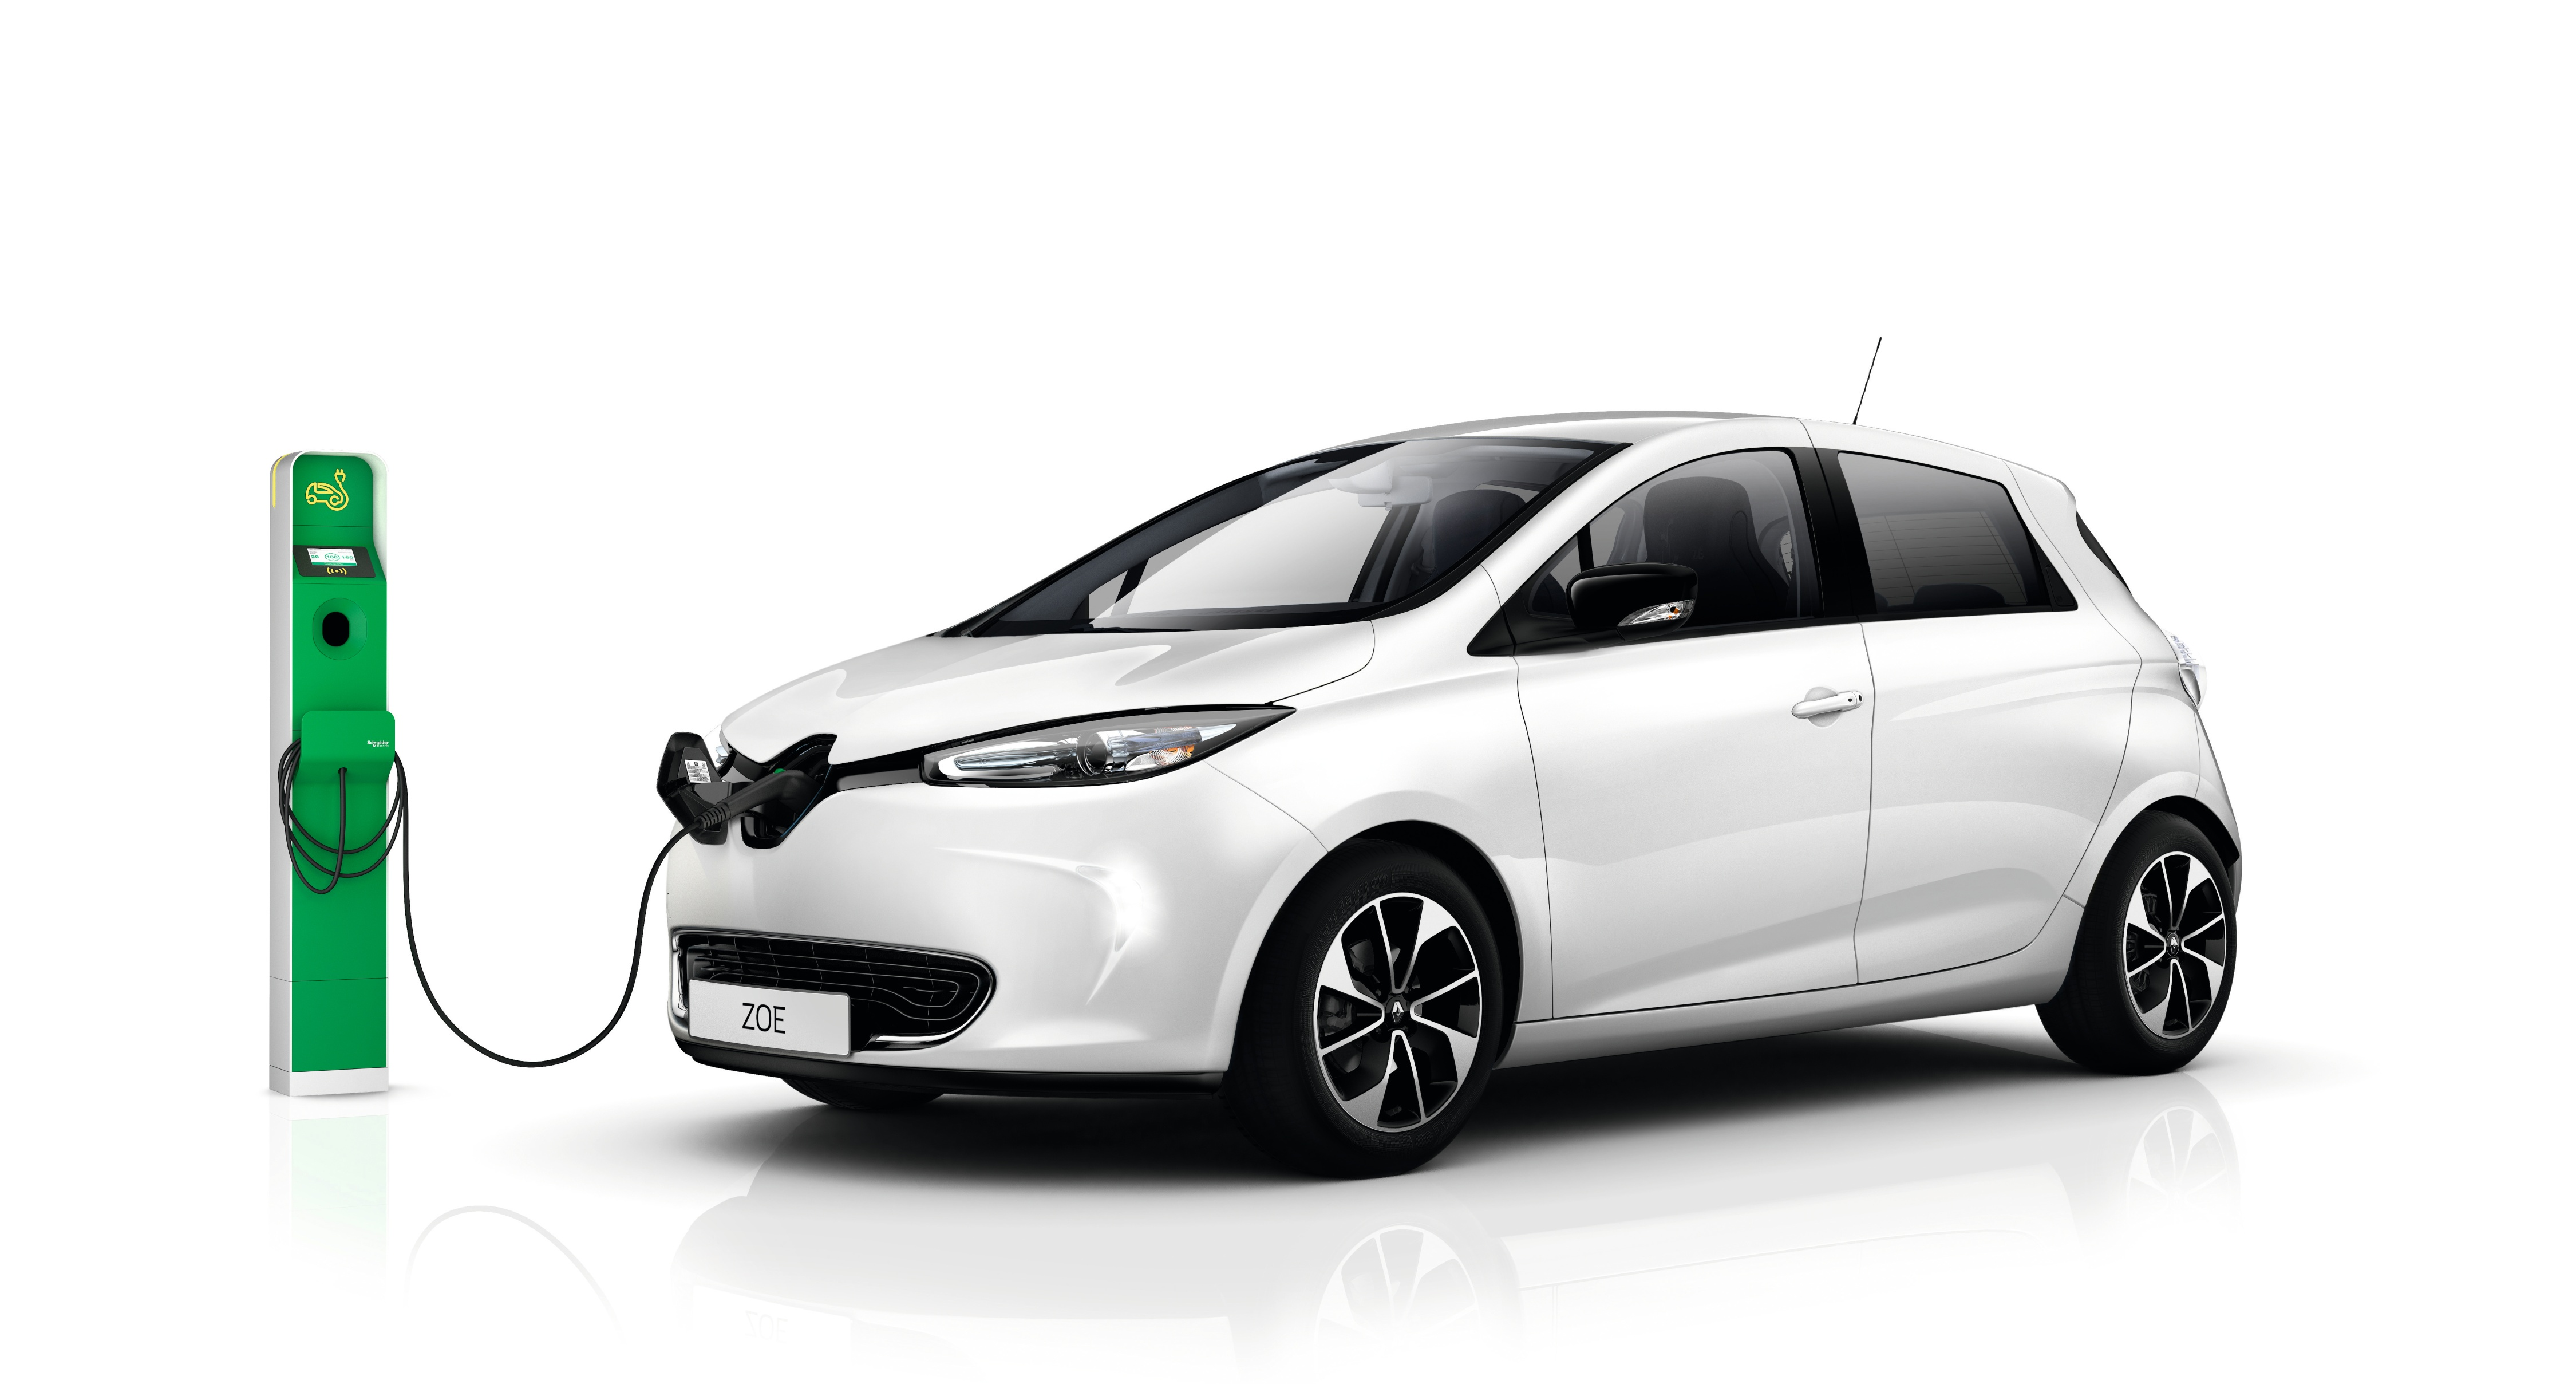 Al Masaood Automobiles launches latest model of all-electric Renault Zoe to boost zero emissions mobility in Abu Dhabi